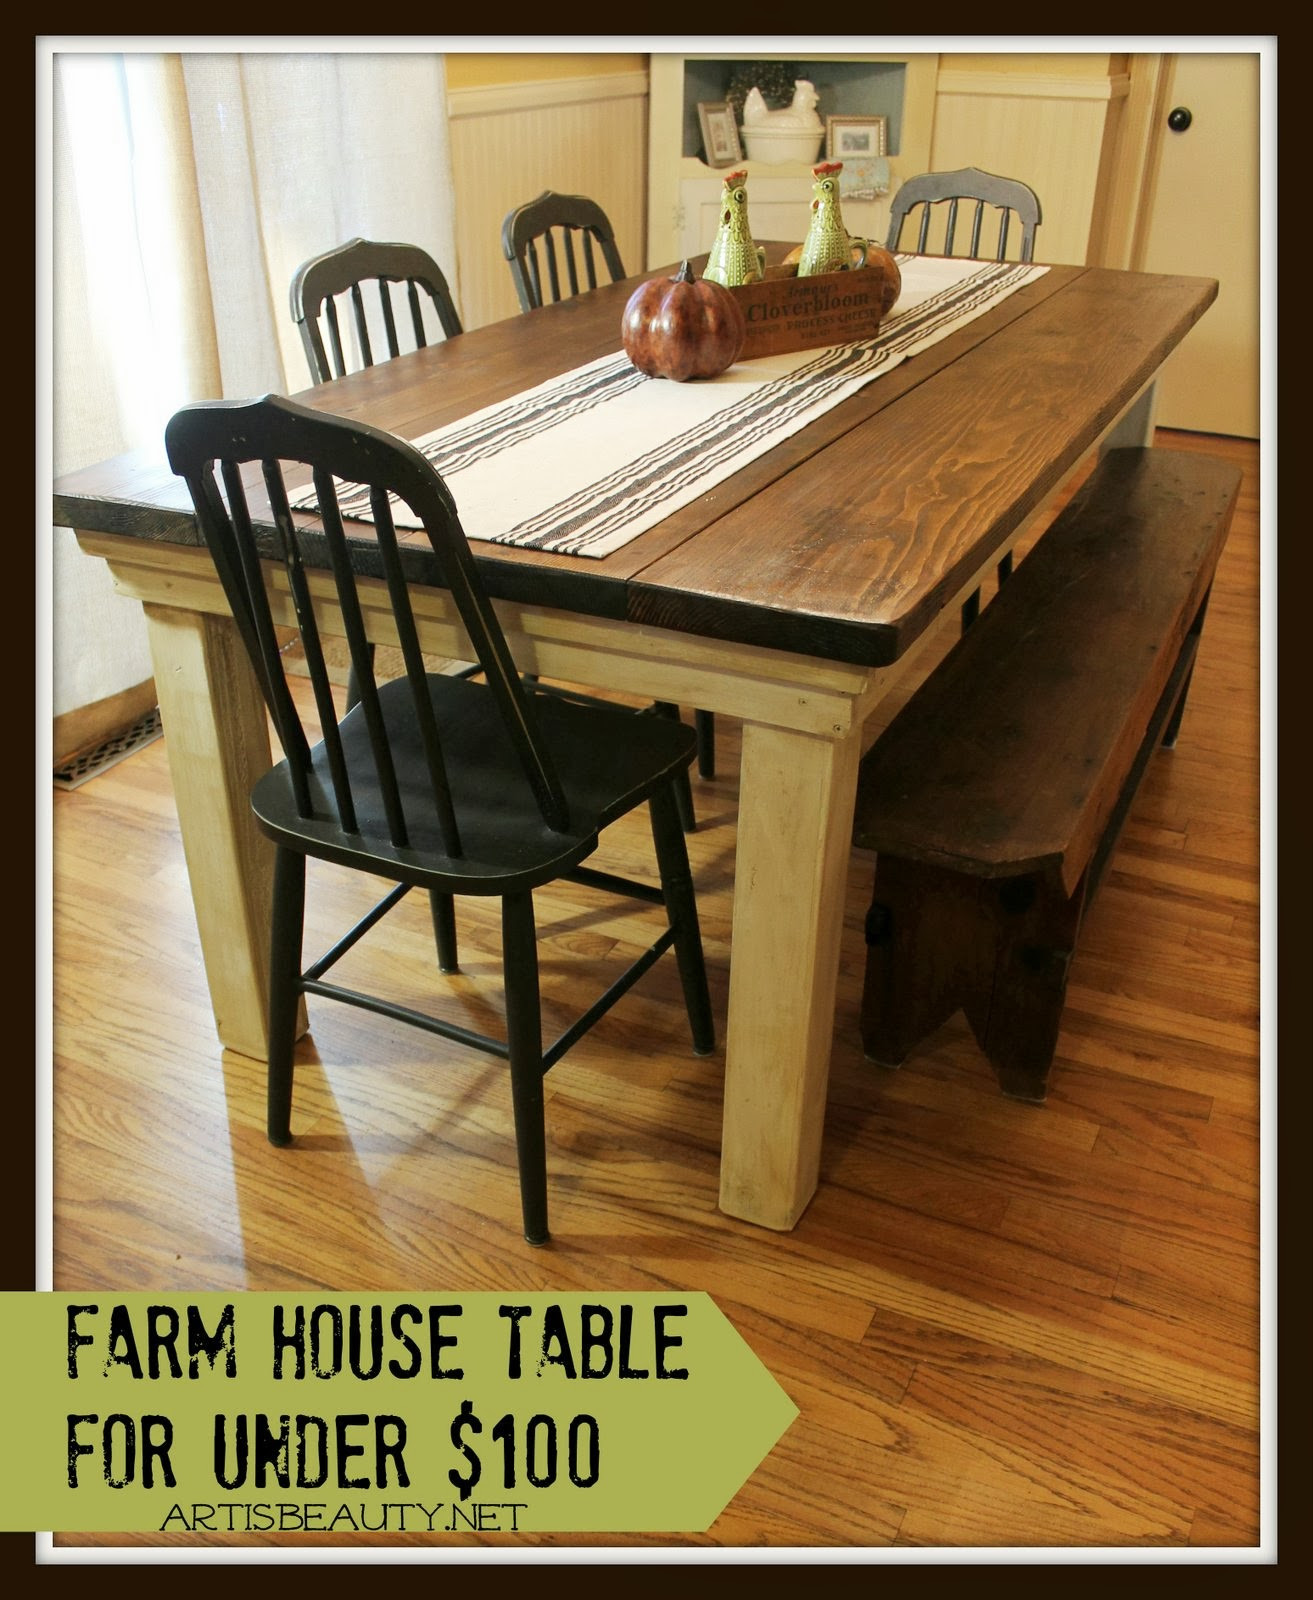 diy hardwood floor table of remodelaholic build a farmhouse table for under 100 pertaining to build a farmhouse table for under 100 art is beauty featured on remodelaholic com